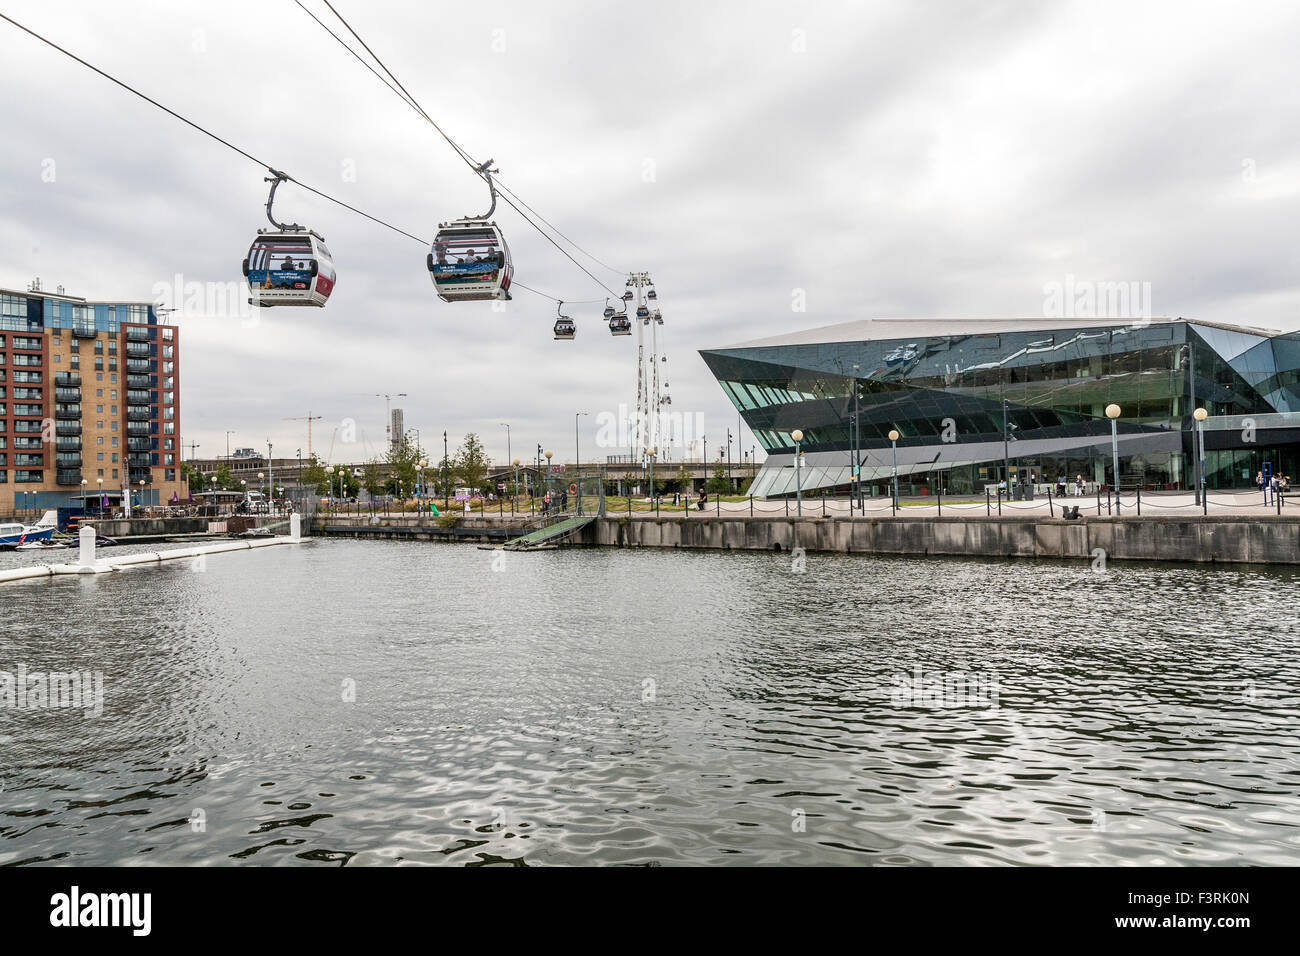 Cable car between Greenwich and Docklands, London, United Kingdom - Stock Image